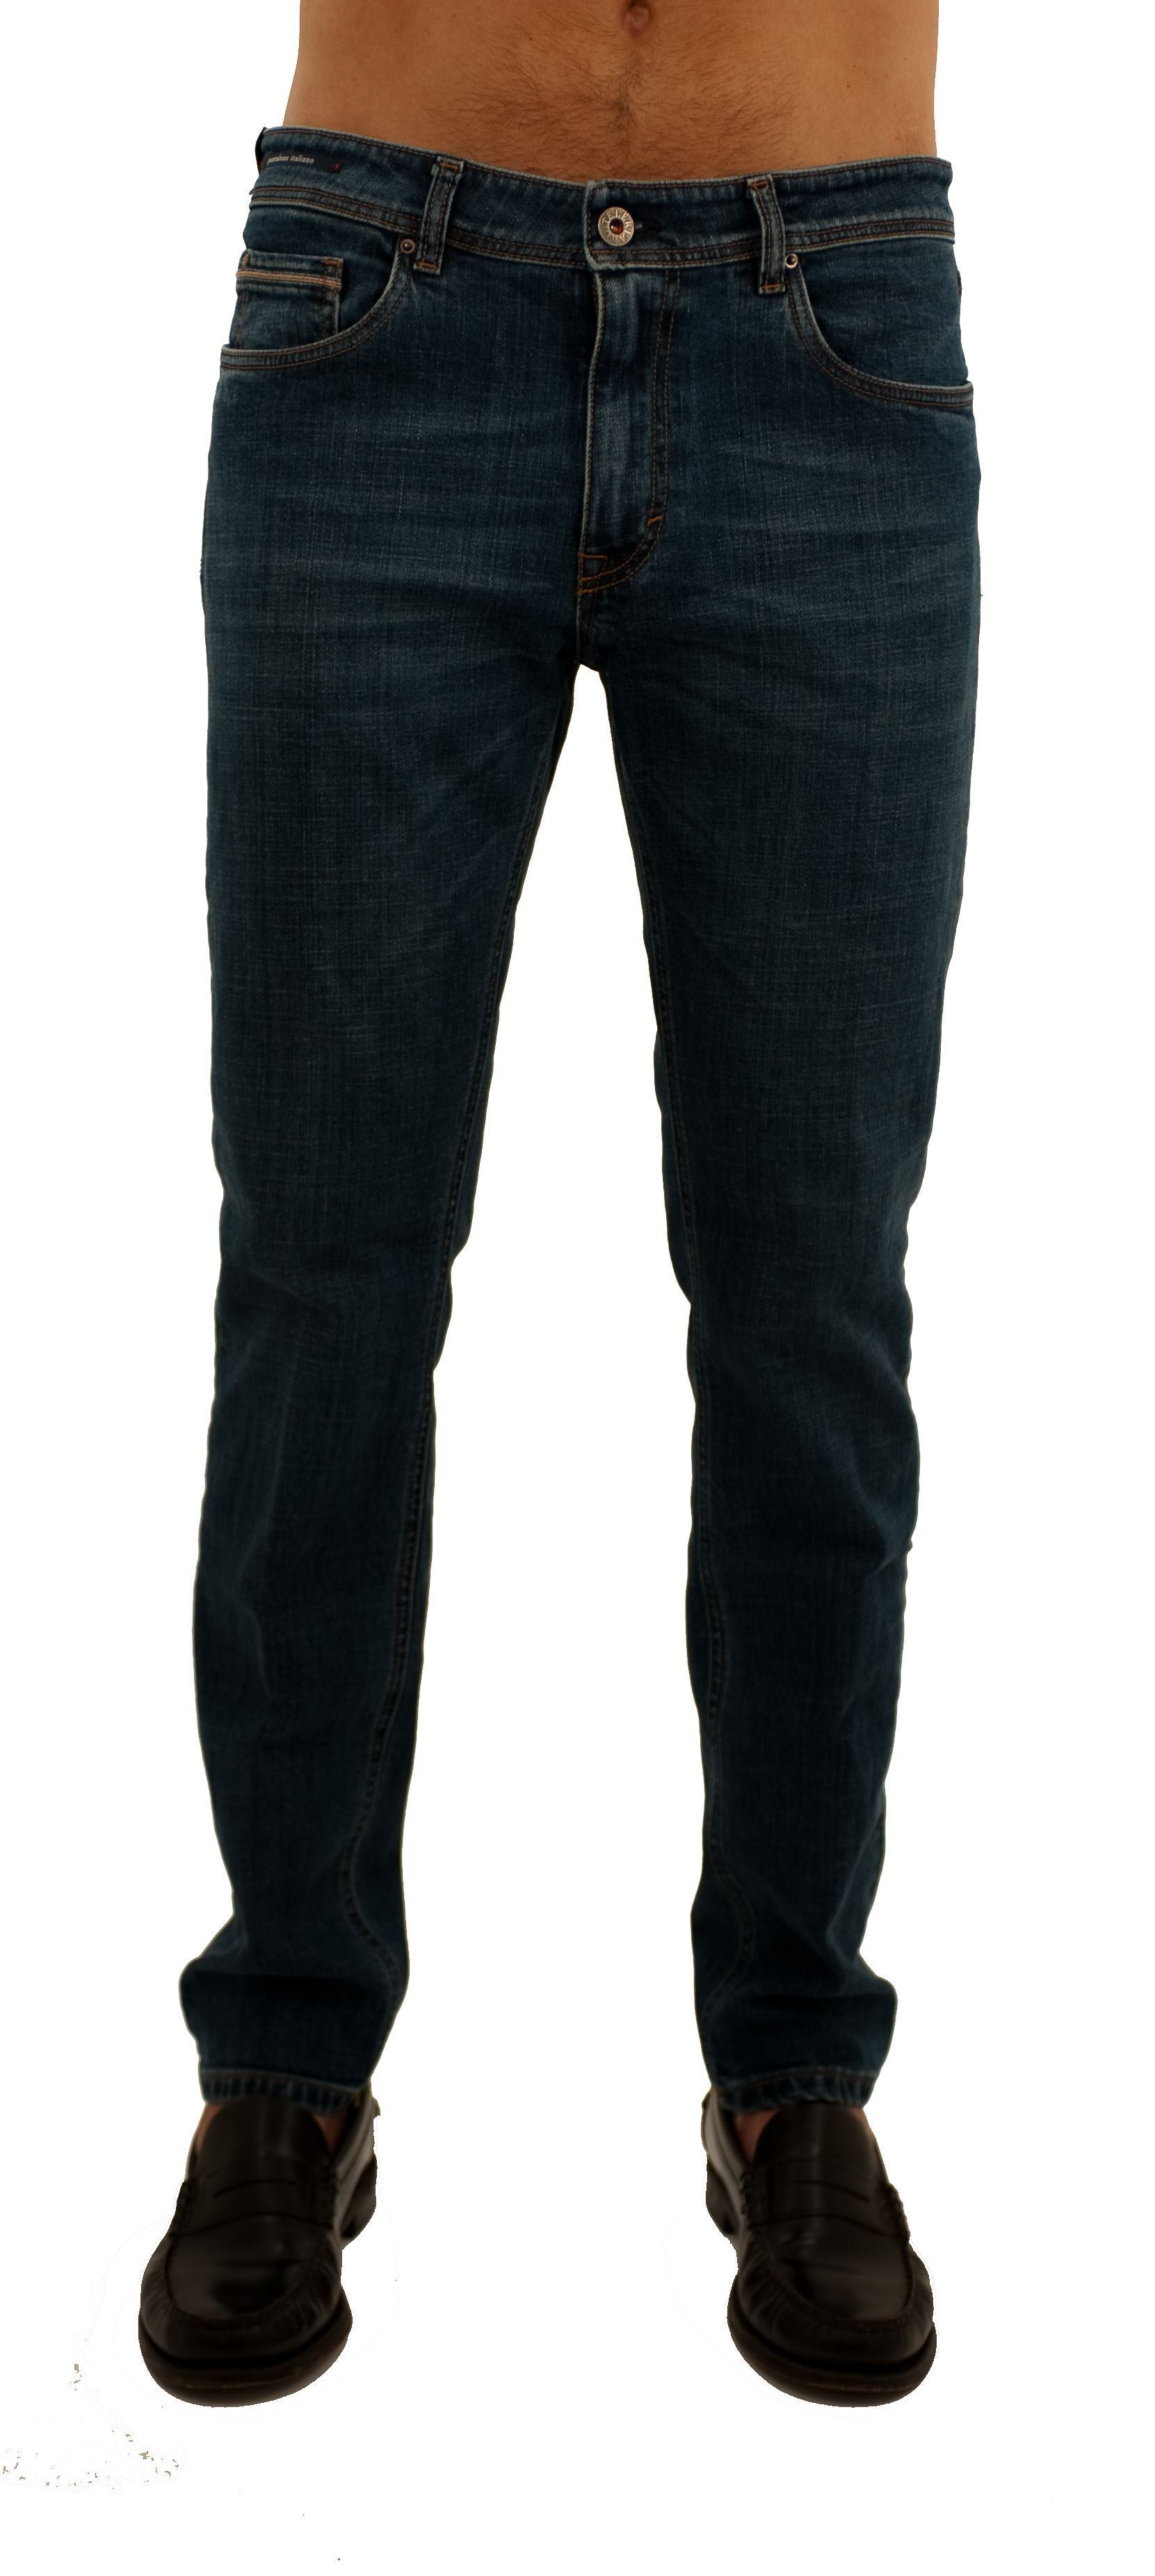 Picture of 5-pocket denim jeans